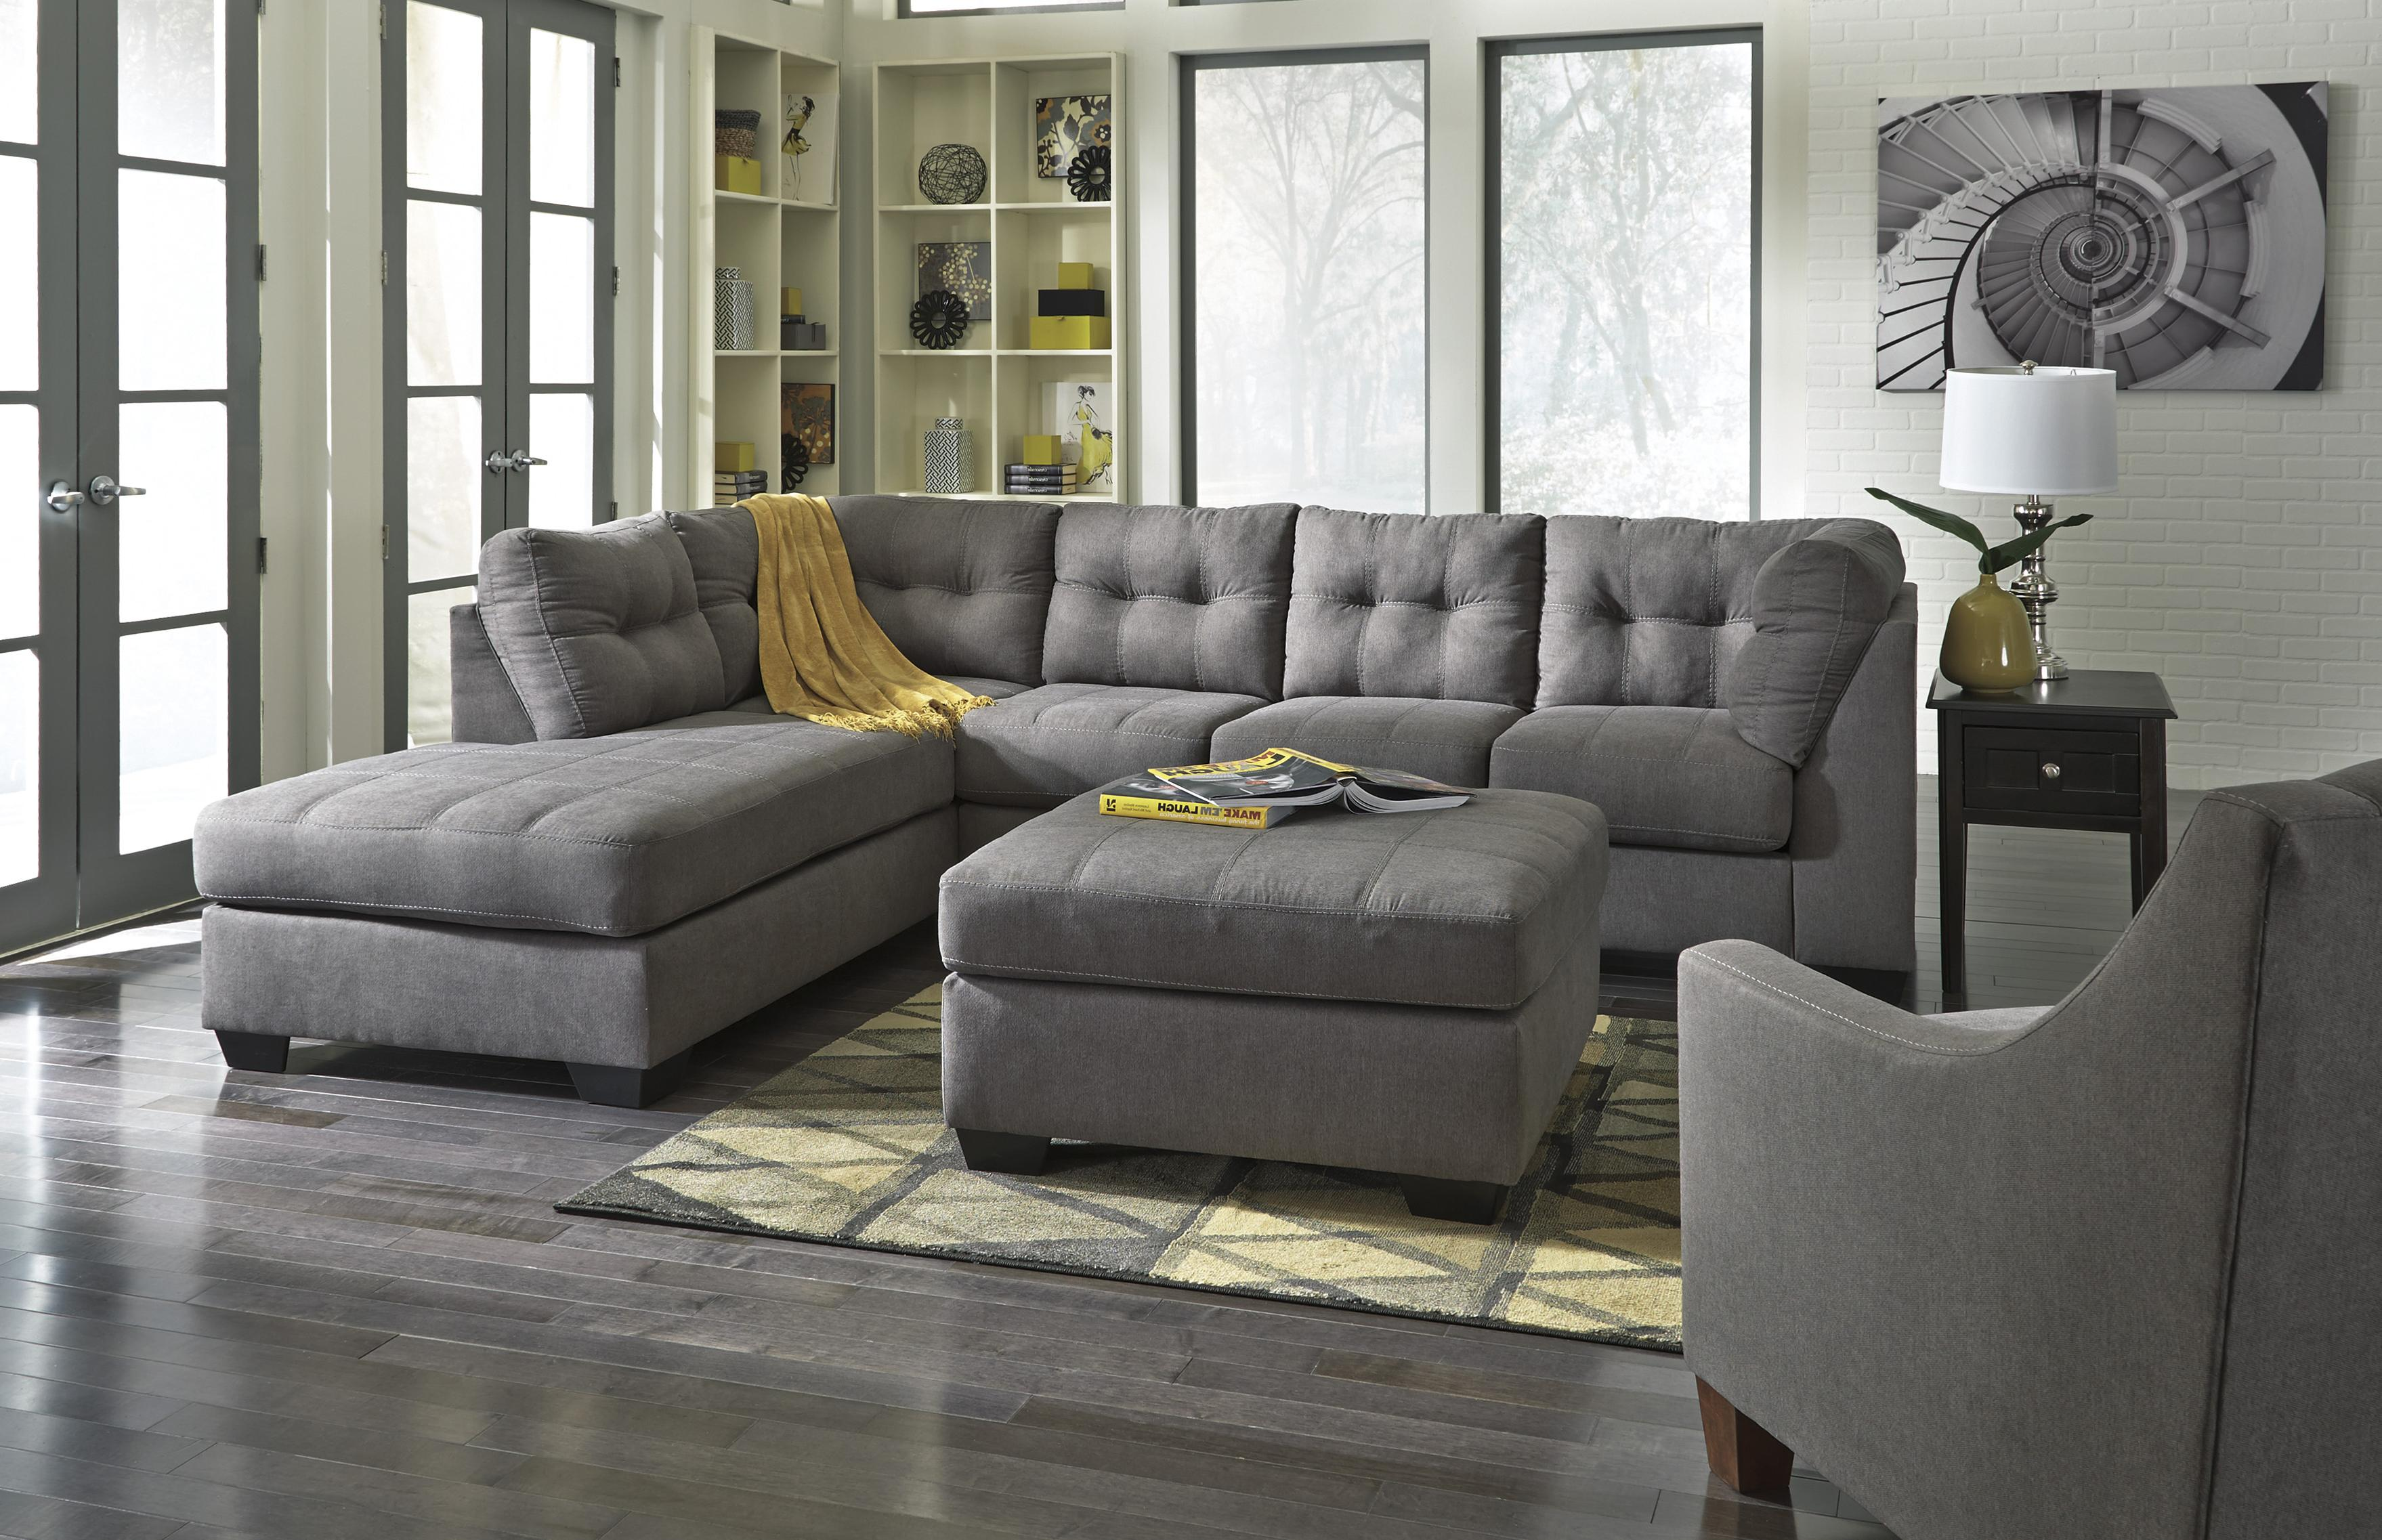 Ashley/Benchcraft Maier - Charcoal Stationary Living Room Group - Item Number: 45200 Living Room Group 4